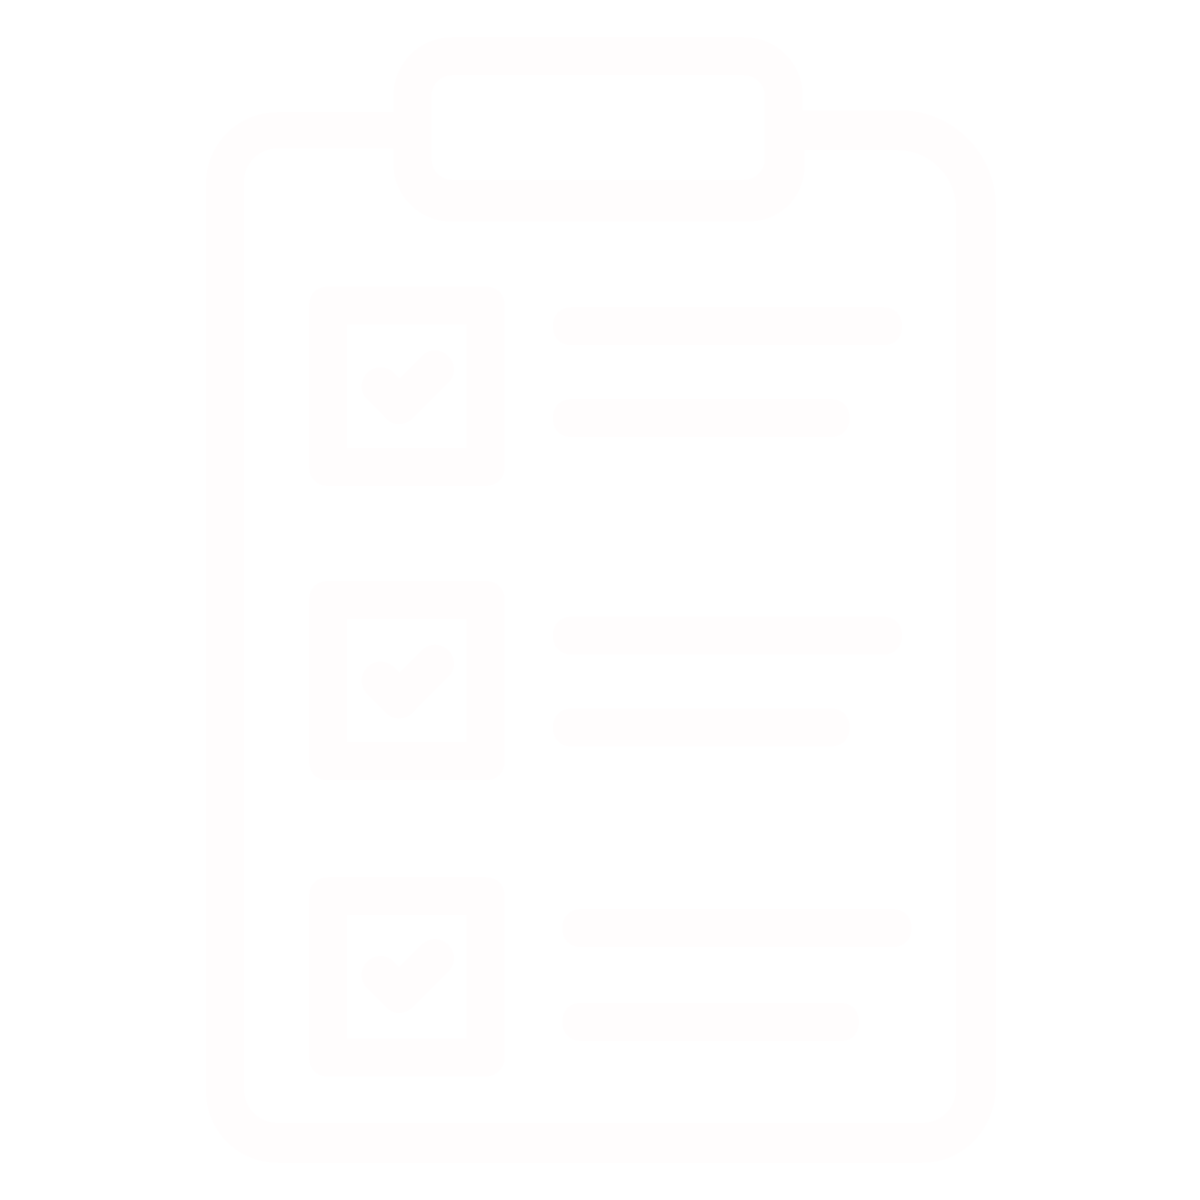 Safety App - Specific requirements